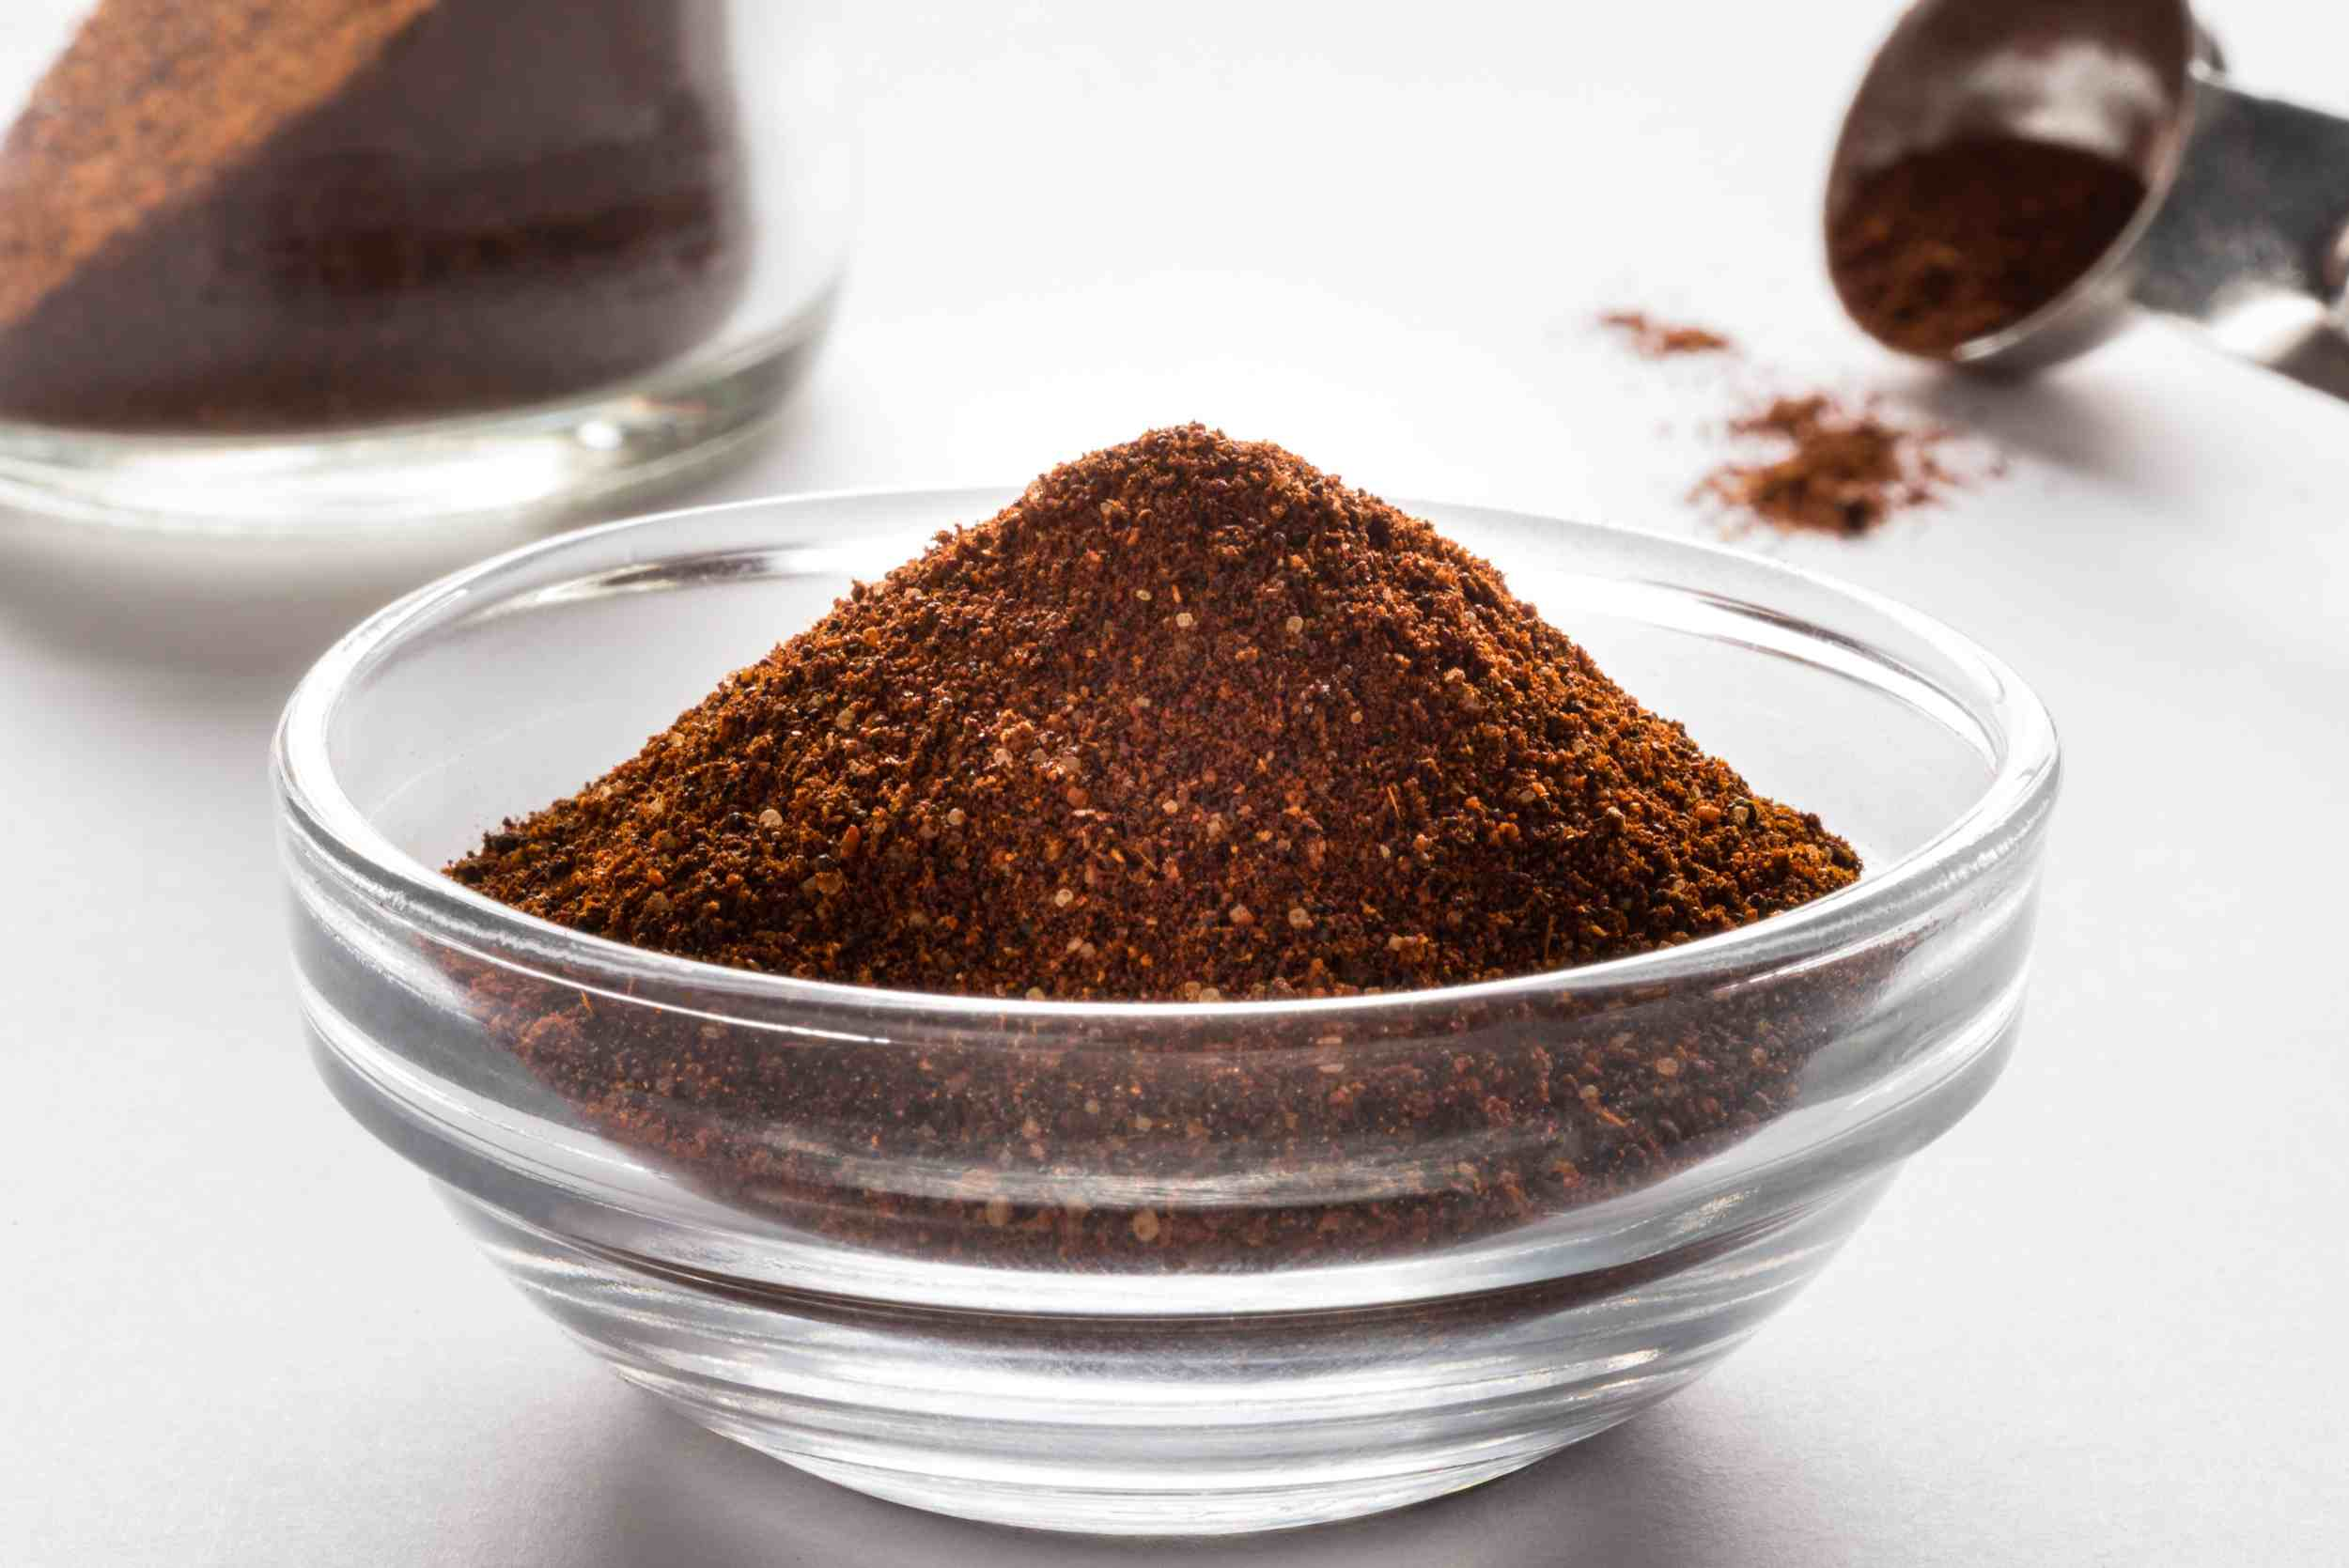 Homemade chili powder seasoning